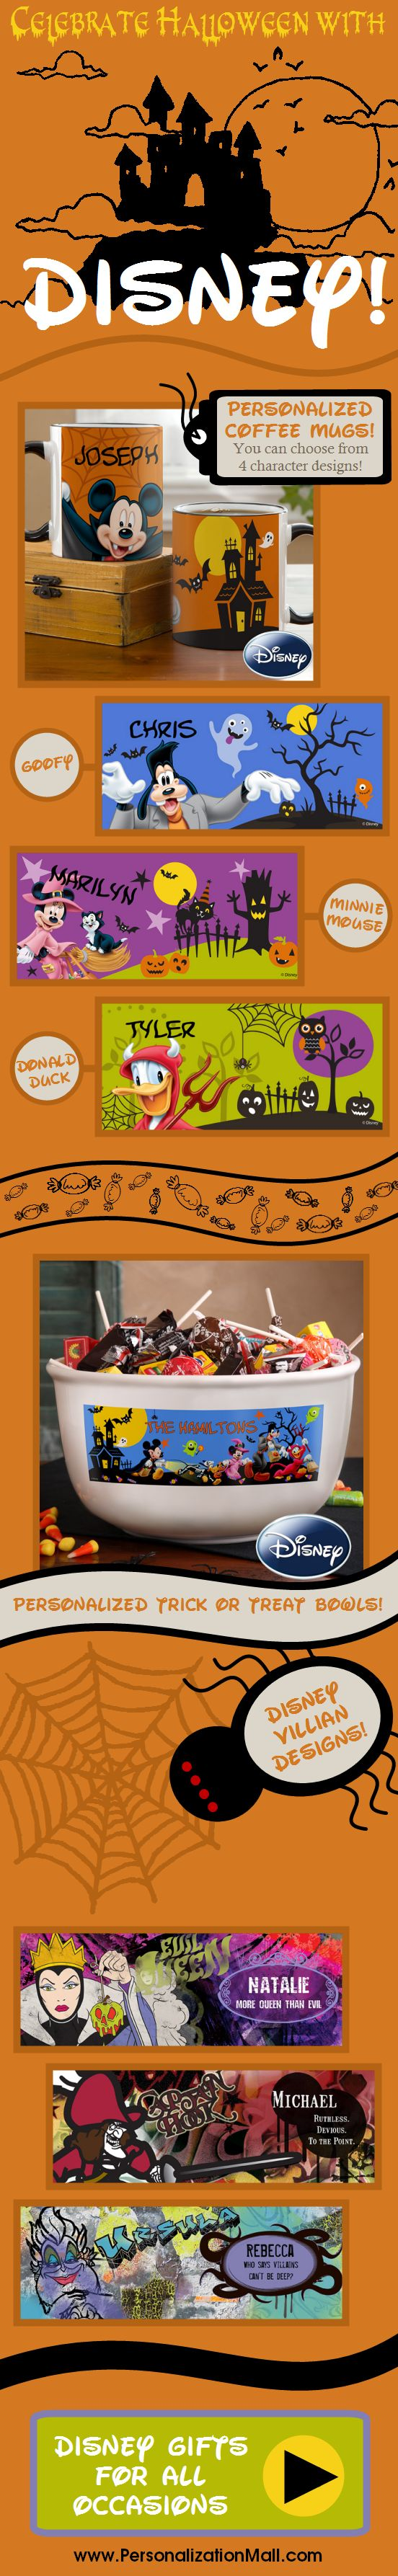 Disney Fans will LOVE this! They're all your favorite Characters dressed up for Halloween! This site has tons of unique Disney Gifts that you can personalize - it's so cool you have to check out this site! #Disney #Mickey